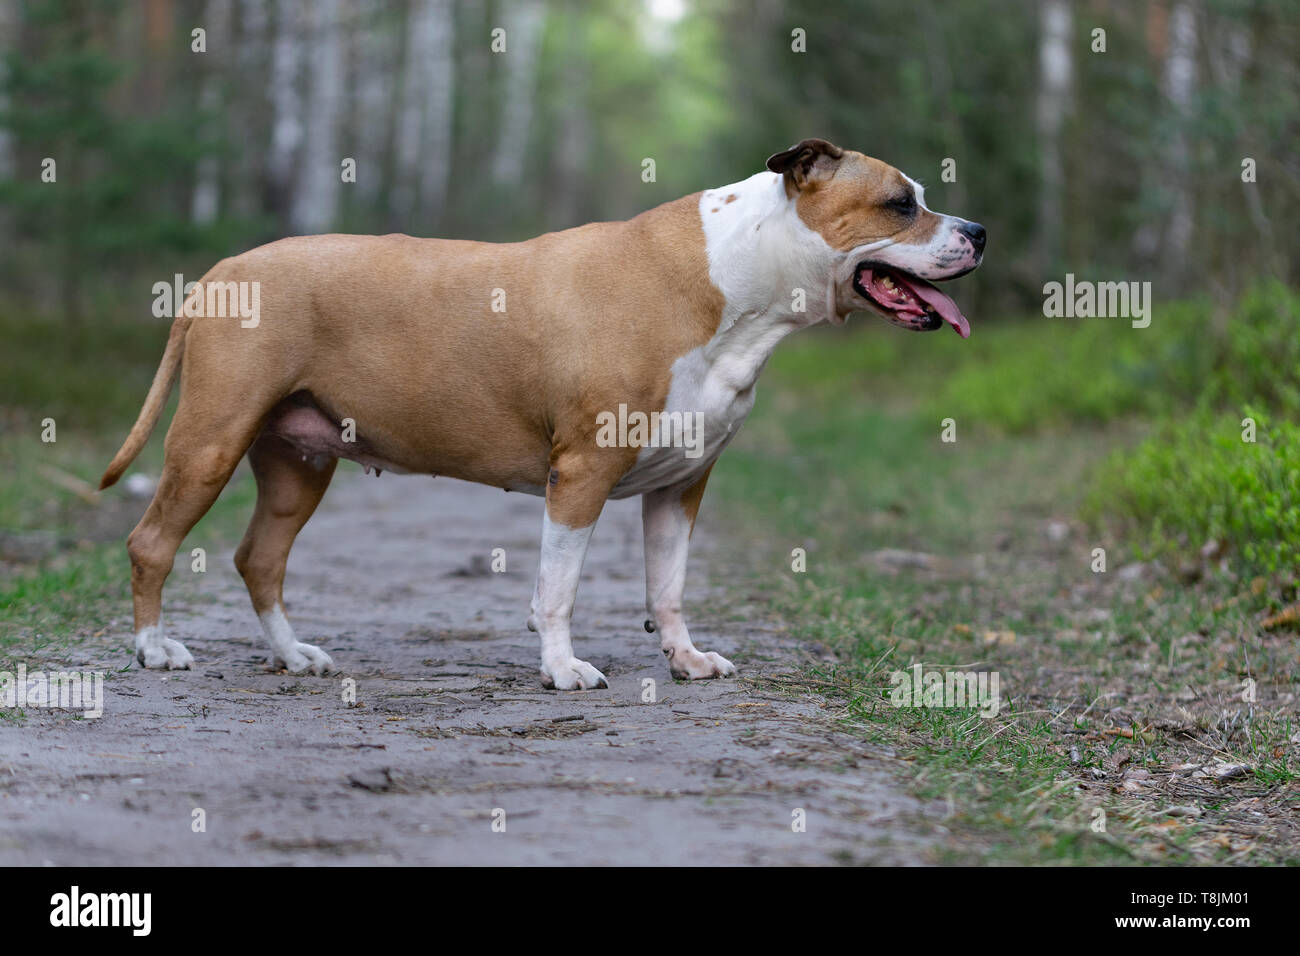 Amstaff is playing in the forest in a sunny spring day. The dog poses for the picture. - Stock Image